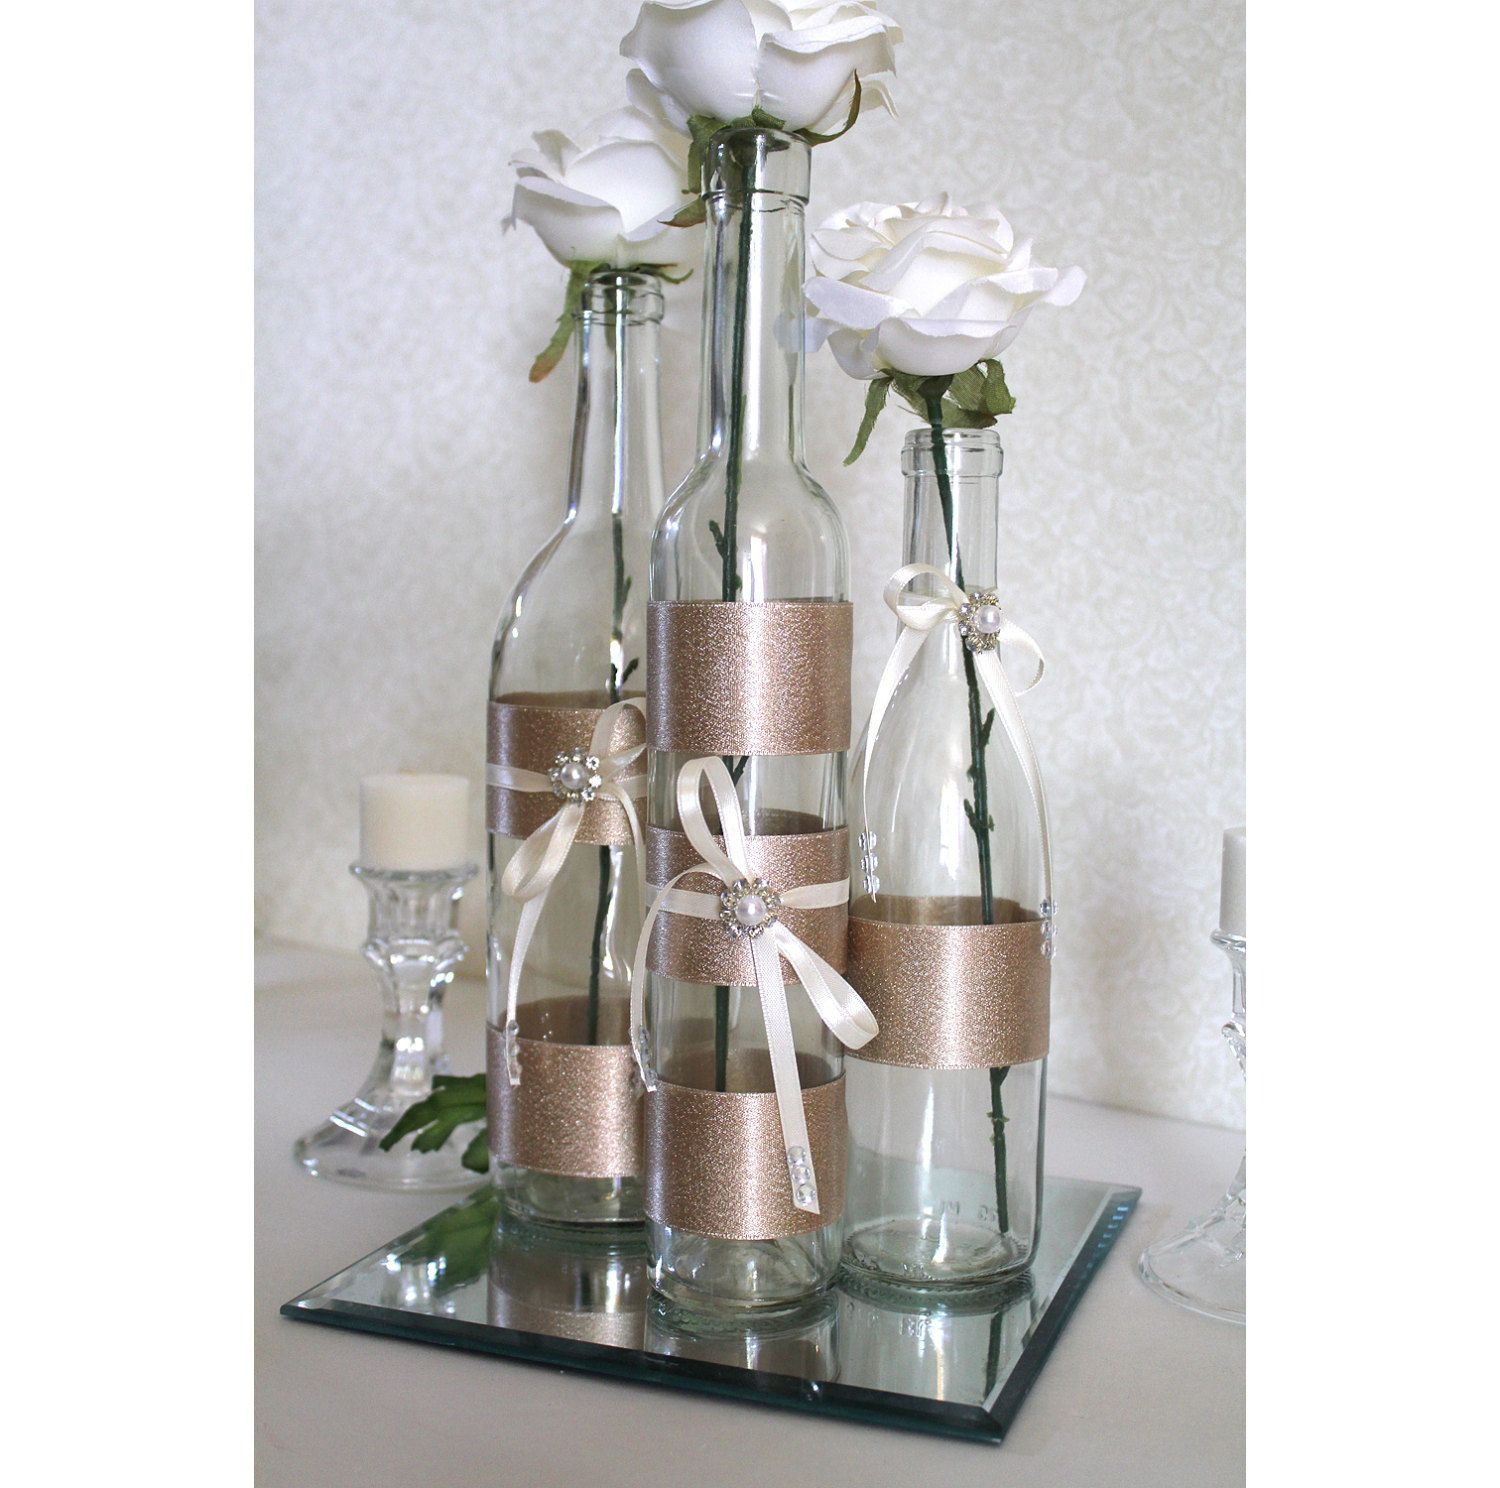 Wine Bottle Decorating Ideas Set3 Decorated Wine Bottle Centerpiece Champagnedazzlinggrace